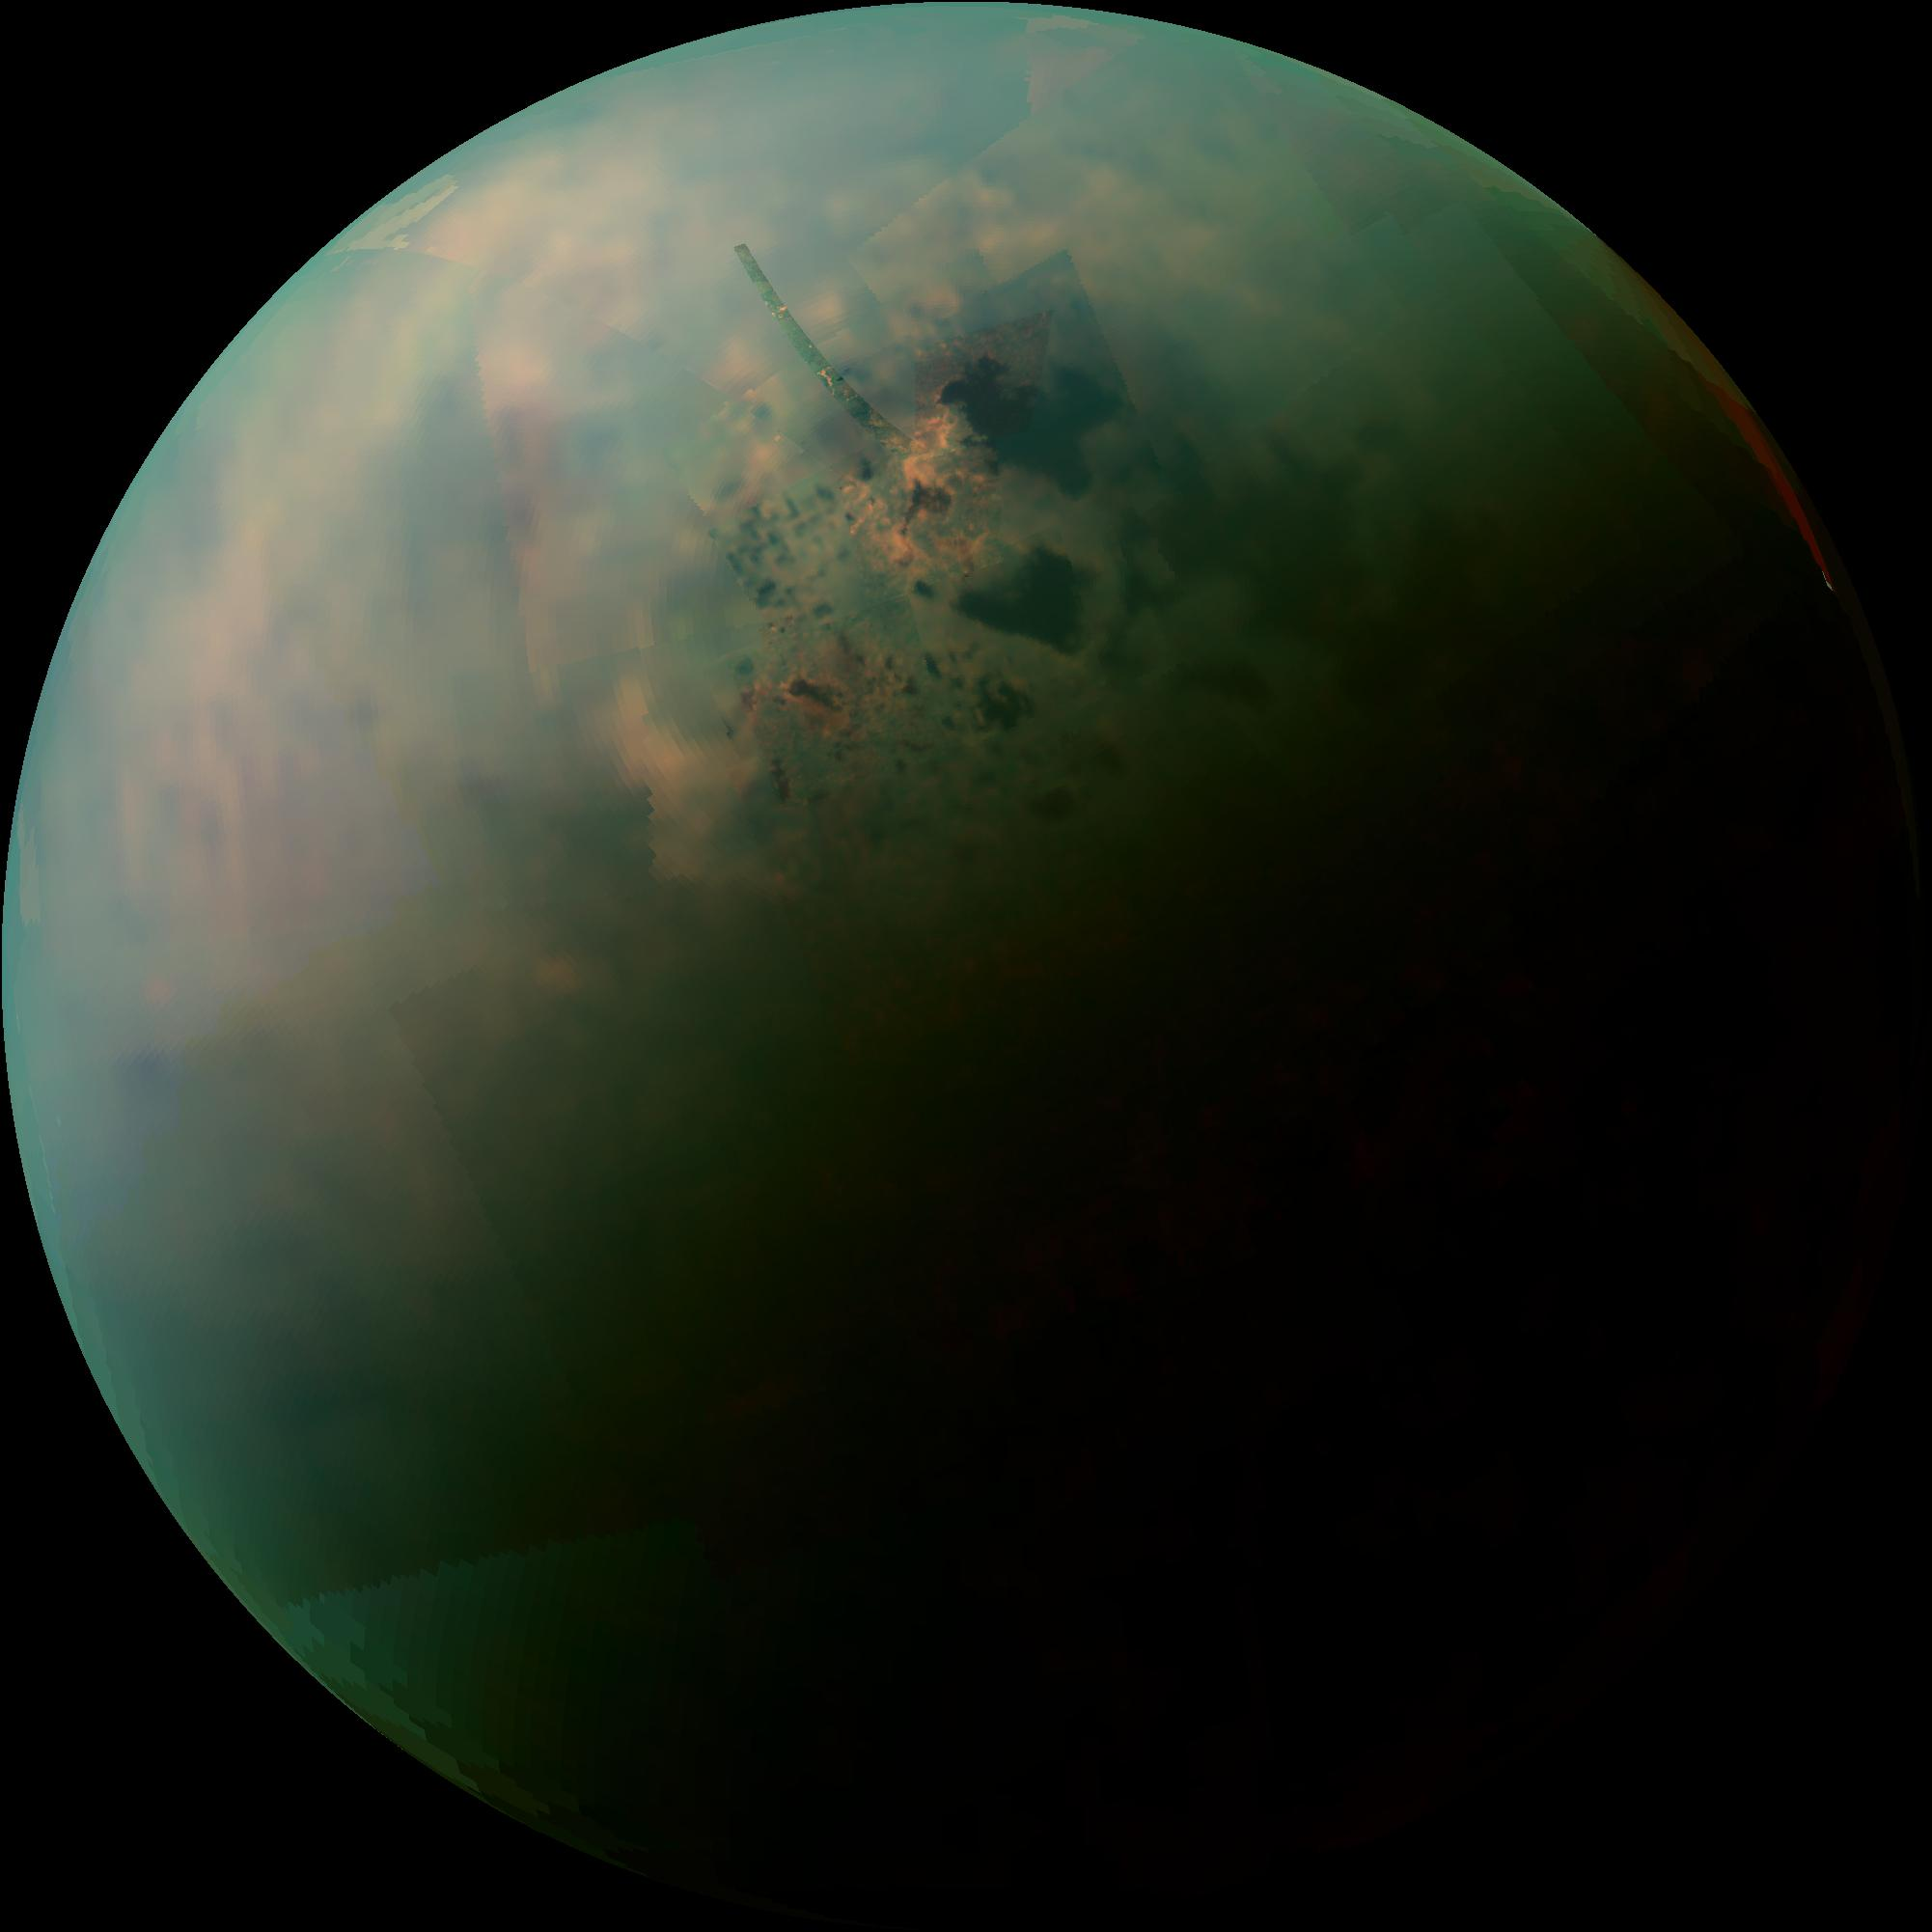 This false-color mosaic, made from infrared data collected by NASA's Cassini spacecraft, reveals the differences in the composition of surface materials around hydrocarbon lakes at Titan, Saturn's largest moon. Image credit: NASA/JPL-Caltech/University of Arizona/University of Idaho